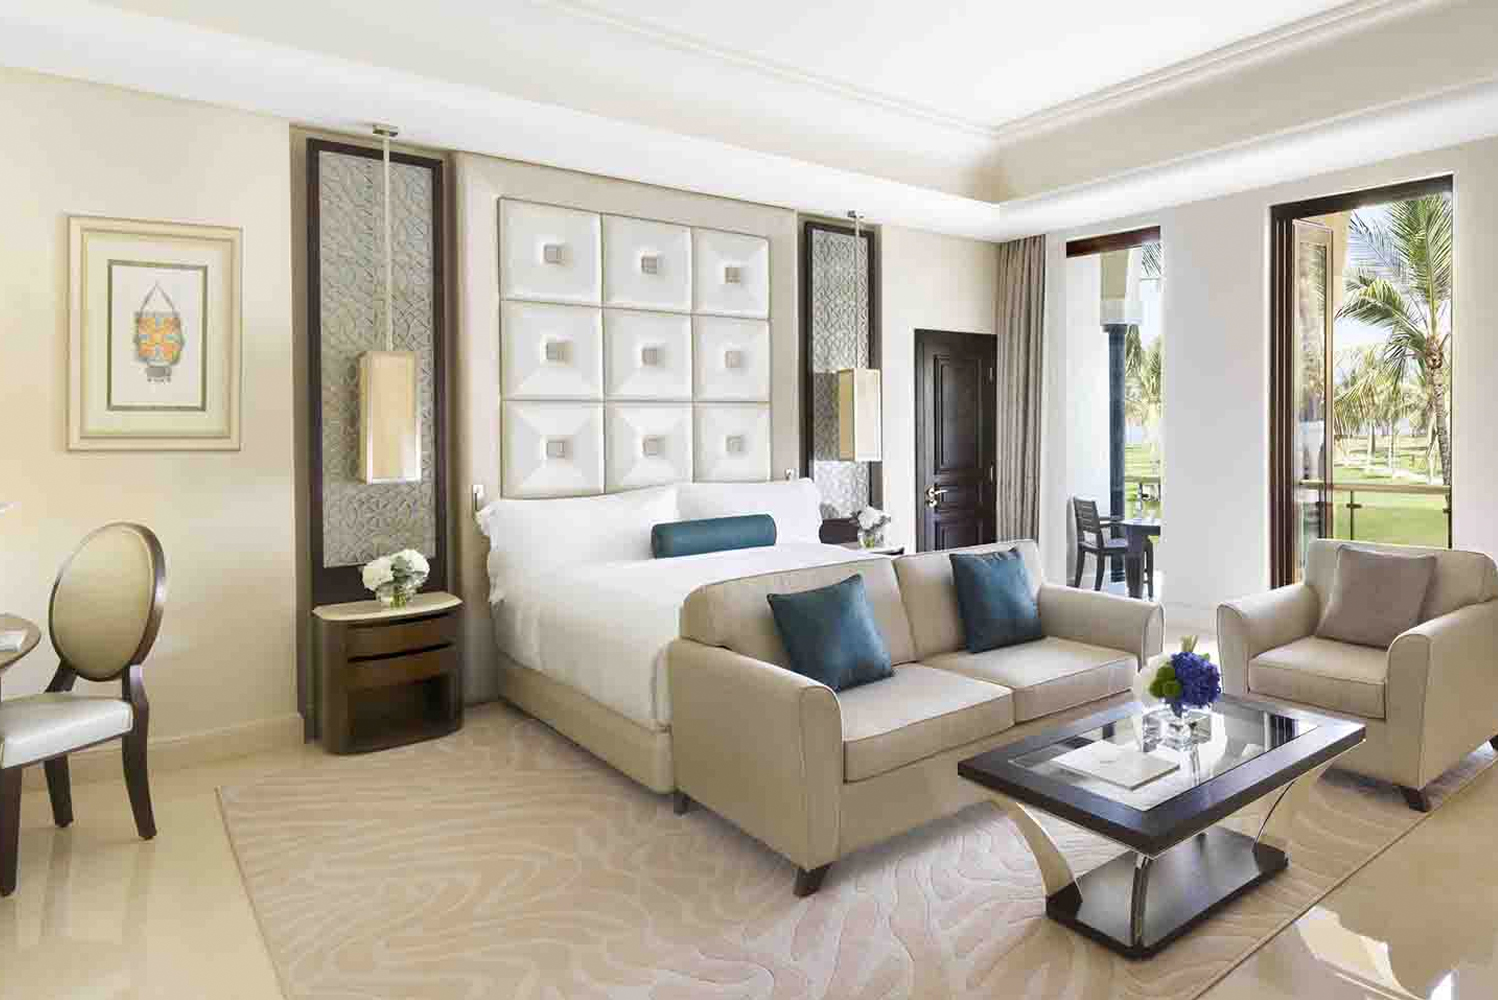 Al Bustan Palace, a Ritz-Carlton Hotel reopened following enhancements.